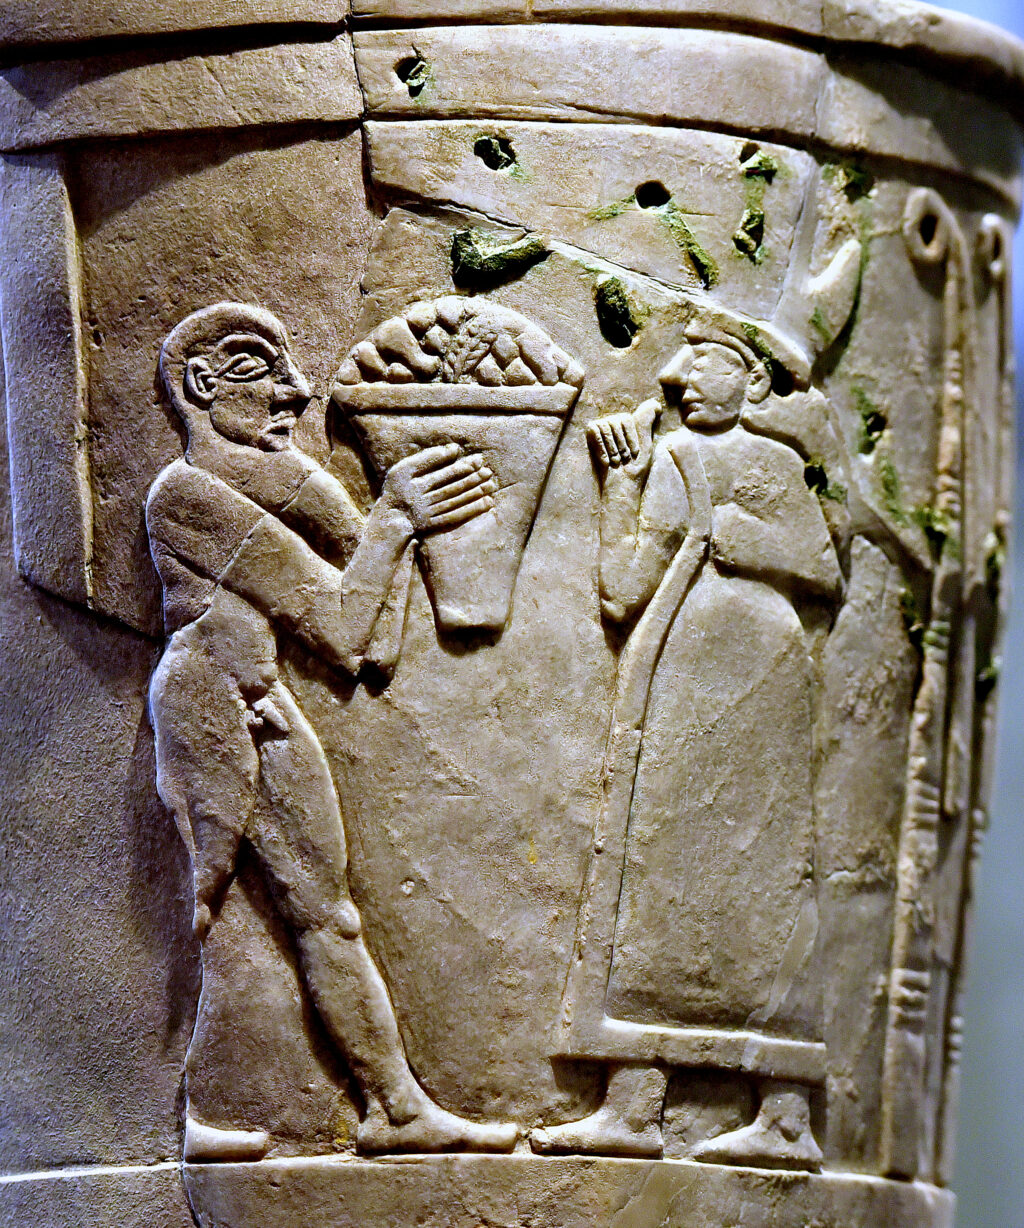 Inanna_receiving_offerings_on_the_Uruk_Vase,_circa_3200-3000_BCE